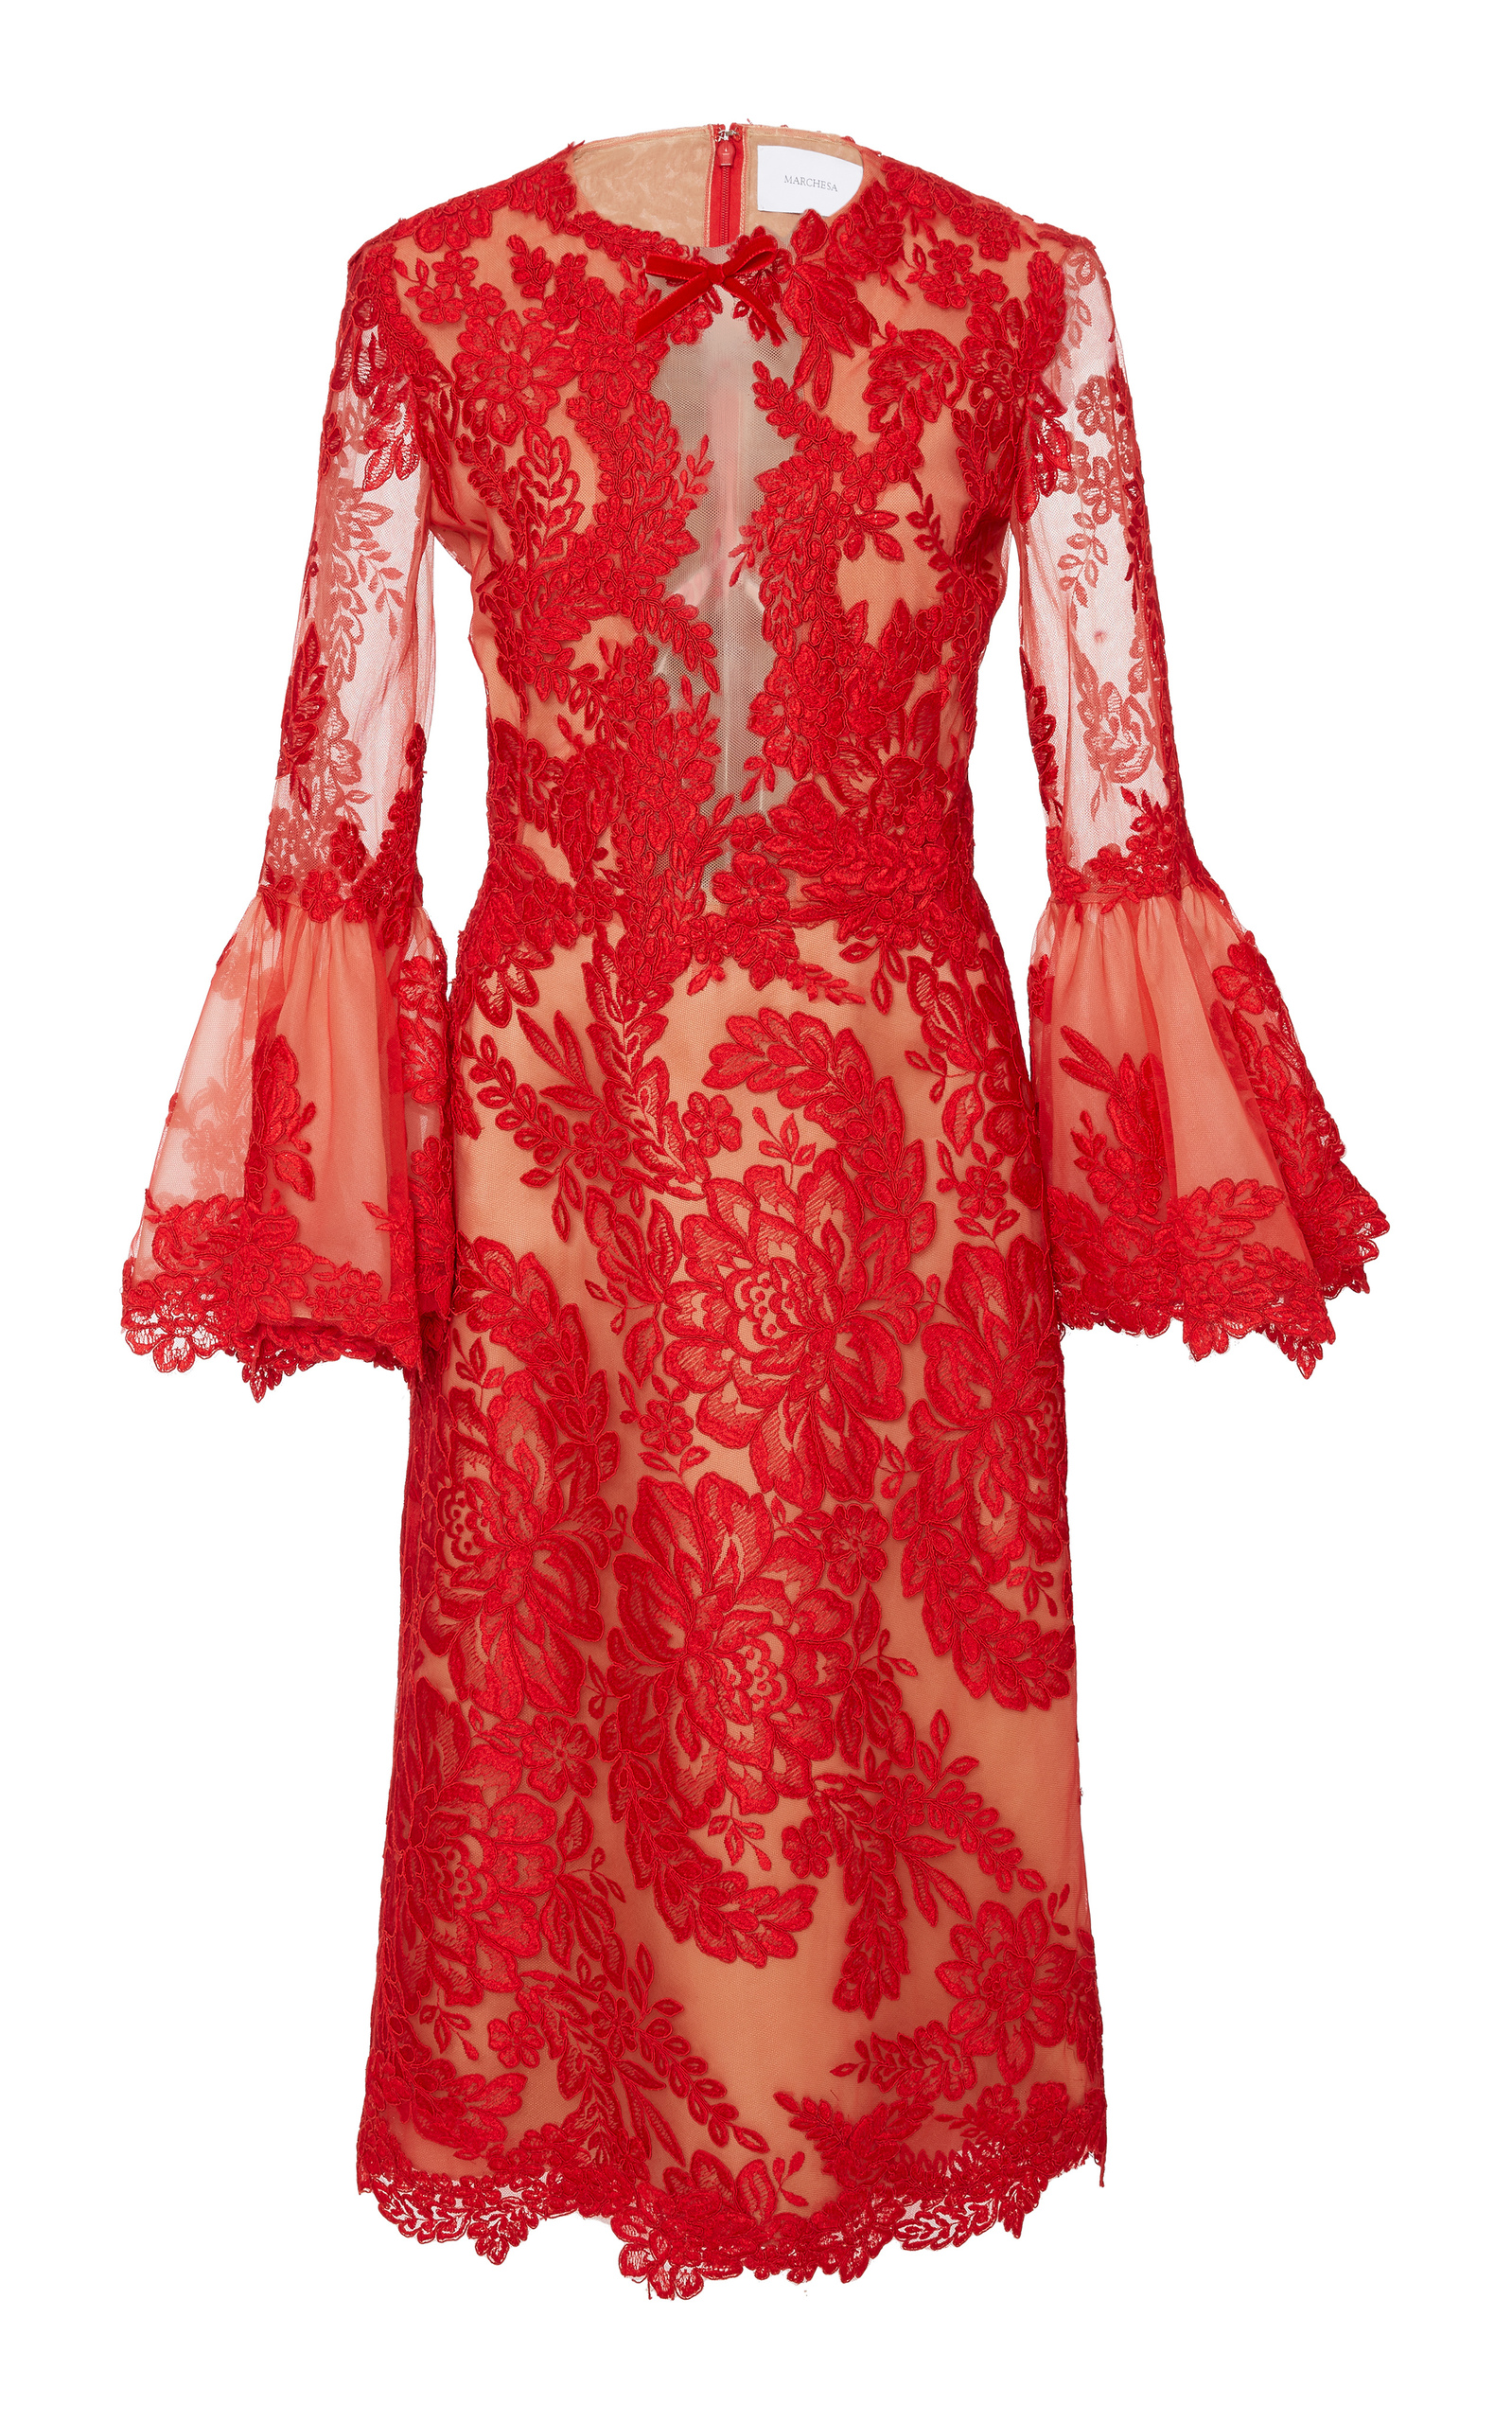 MARCHESA Couture Red Bell Sleeve Cocktail Dress